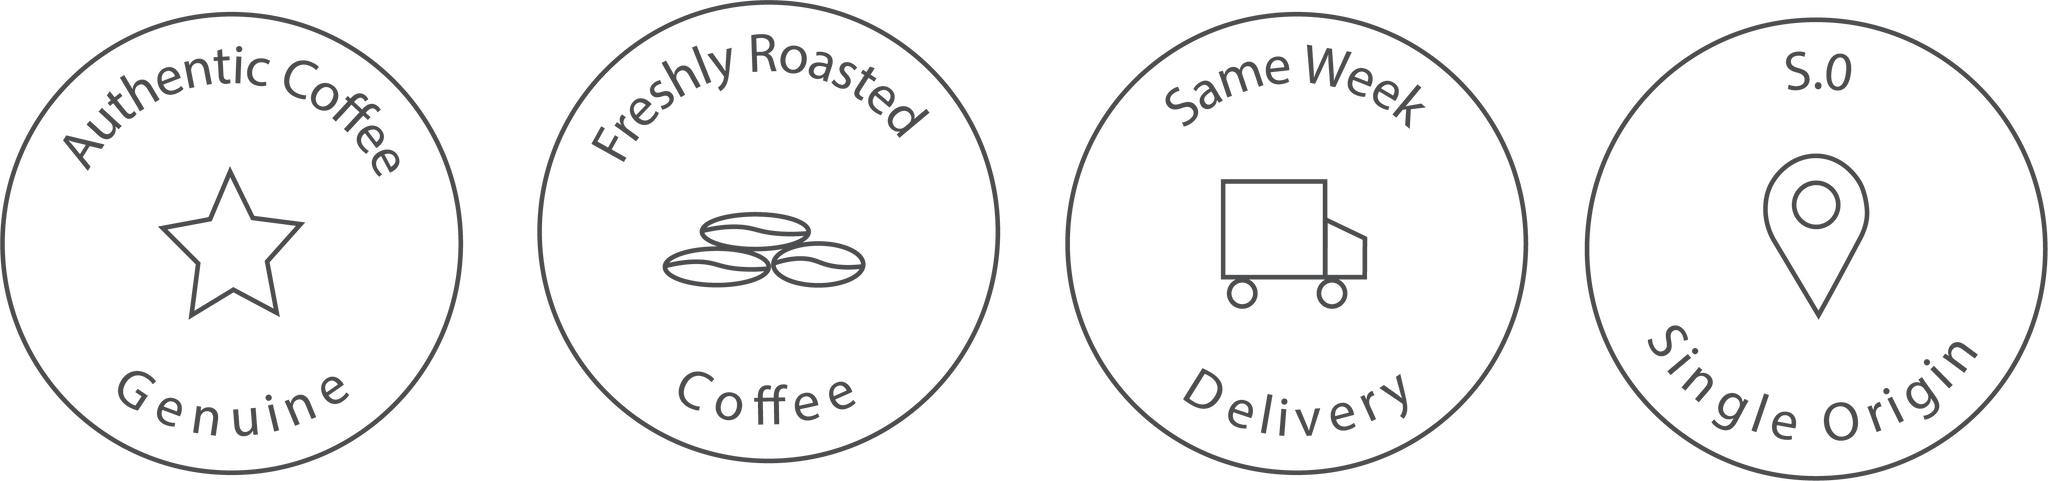 rabbit hole roasters authentic coffee icon